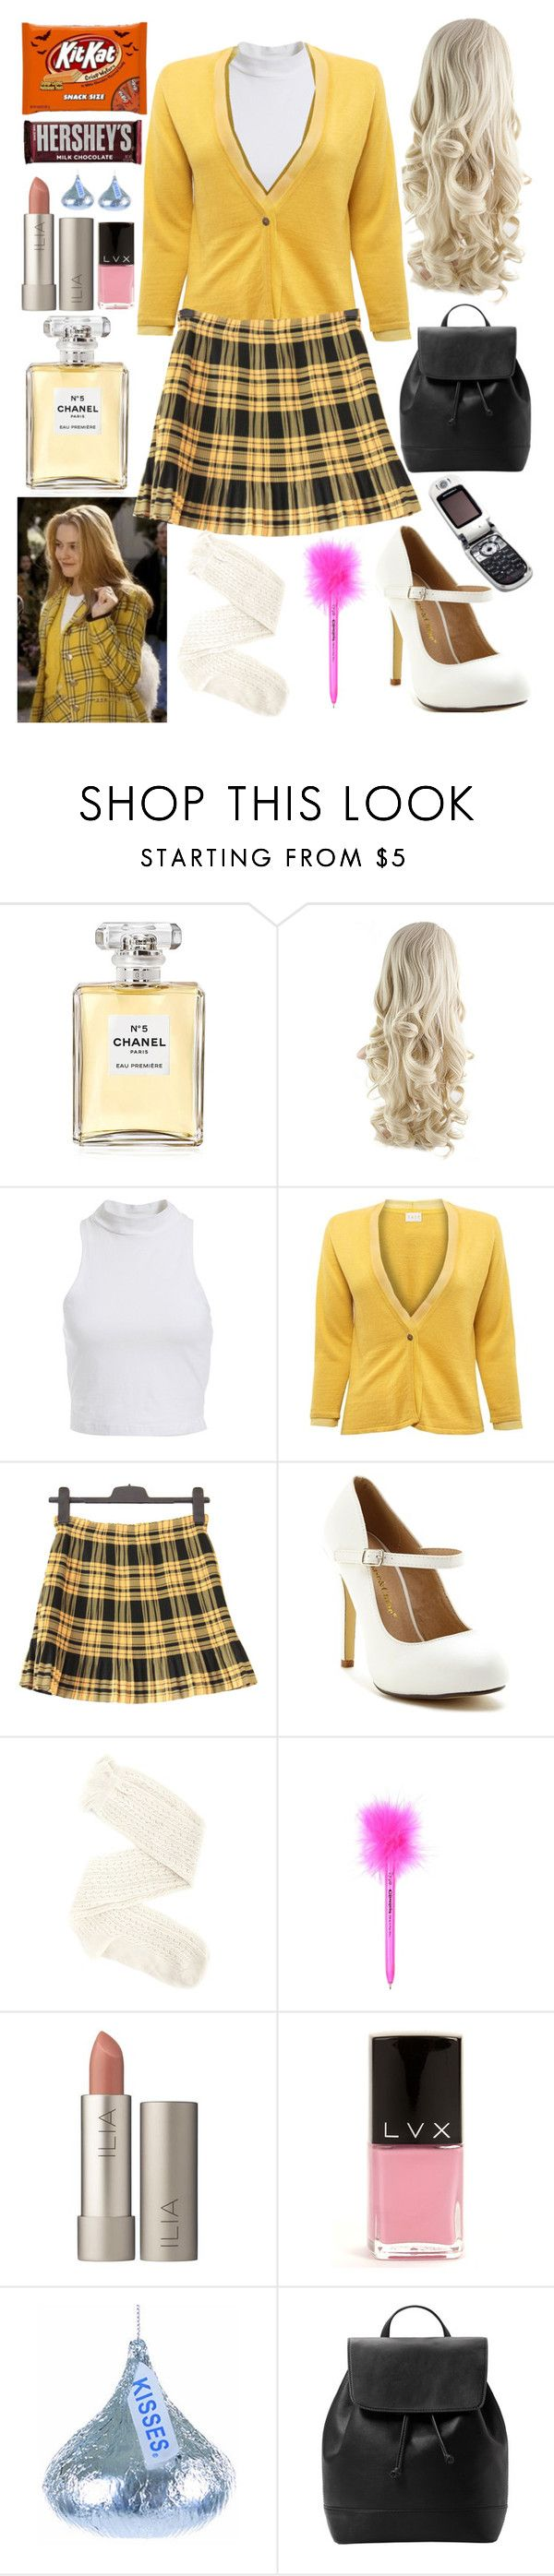 """""""Cher from clueless costume"""" by chloe12801 ❤ liked on Polyvore featuring Mode, Chanel, Bardot, EAST, Chase & Chloe, Charlotte Russe, Ilia, LVX, Hershey's und MANGO"""